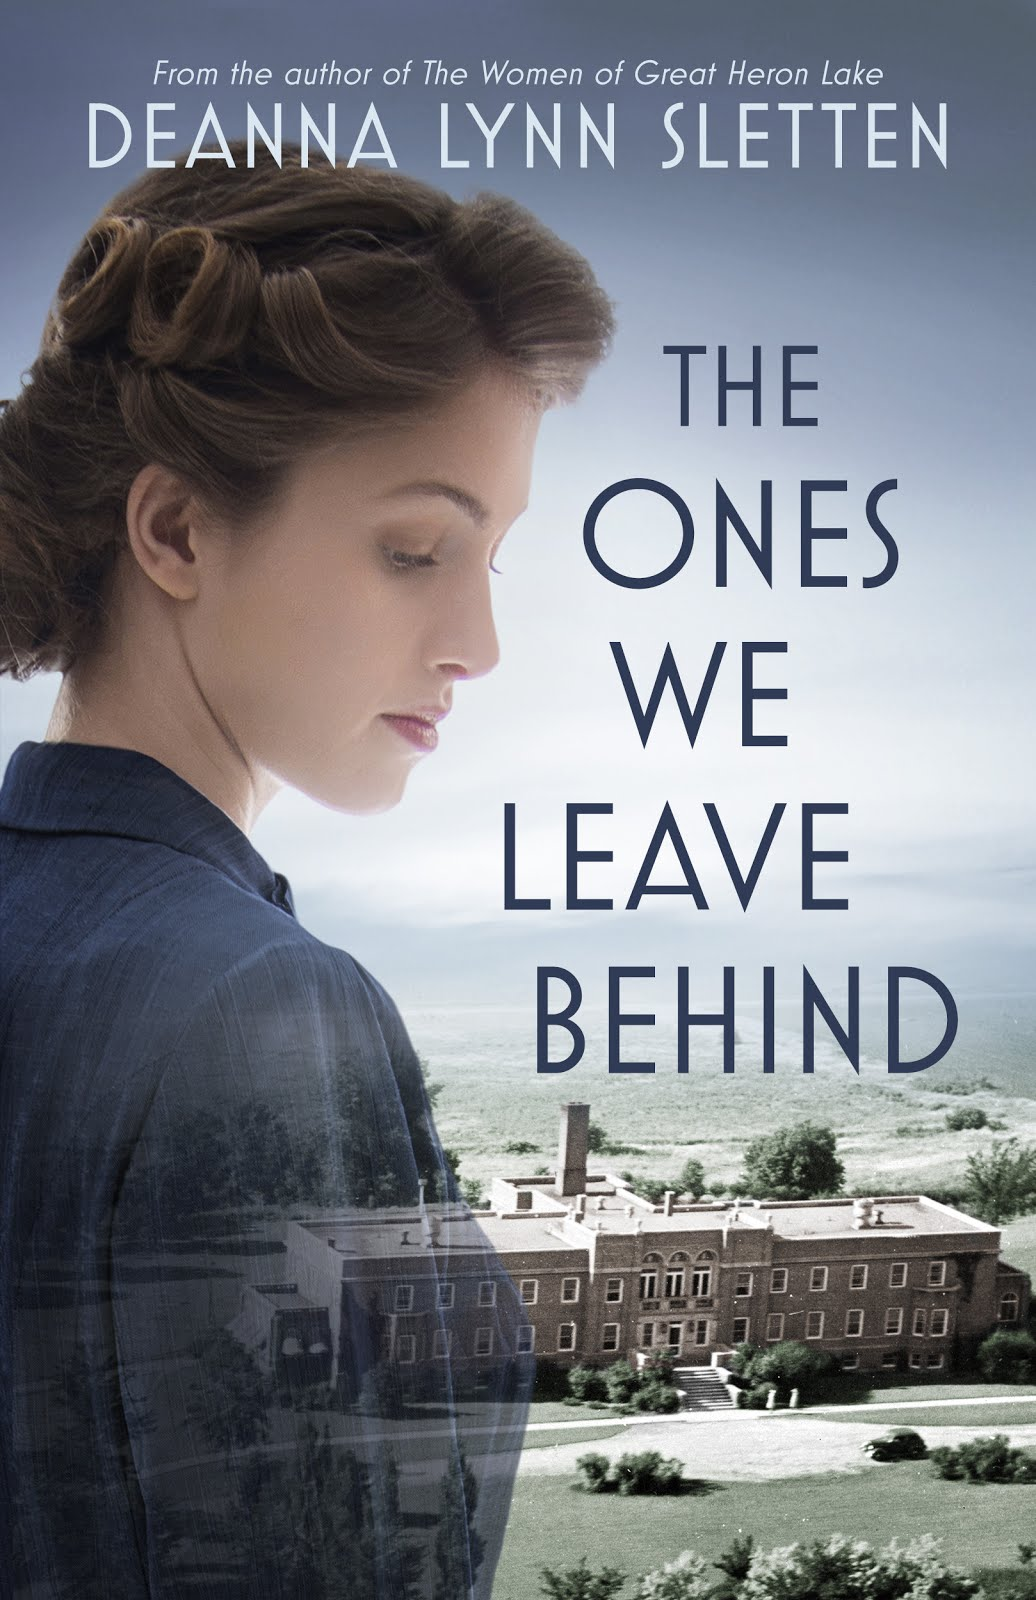 Preorder Now: The Ones We Leave Behind